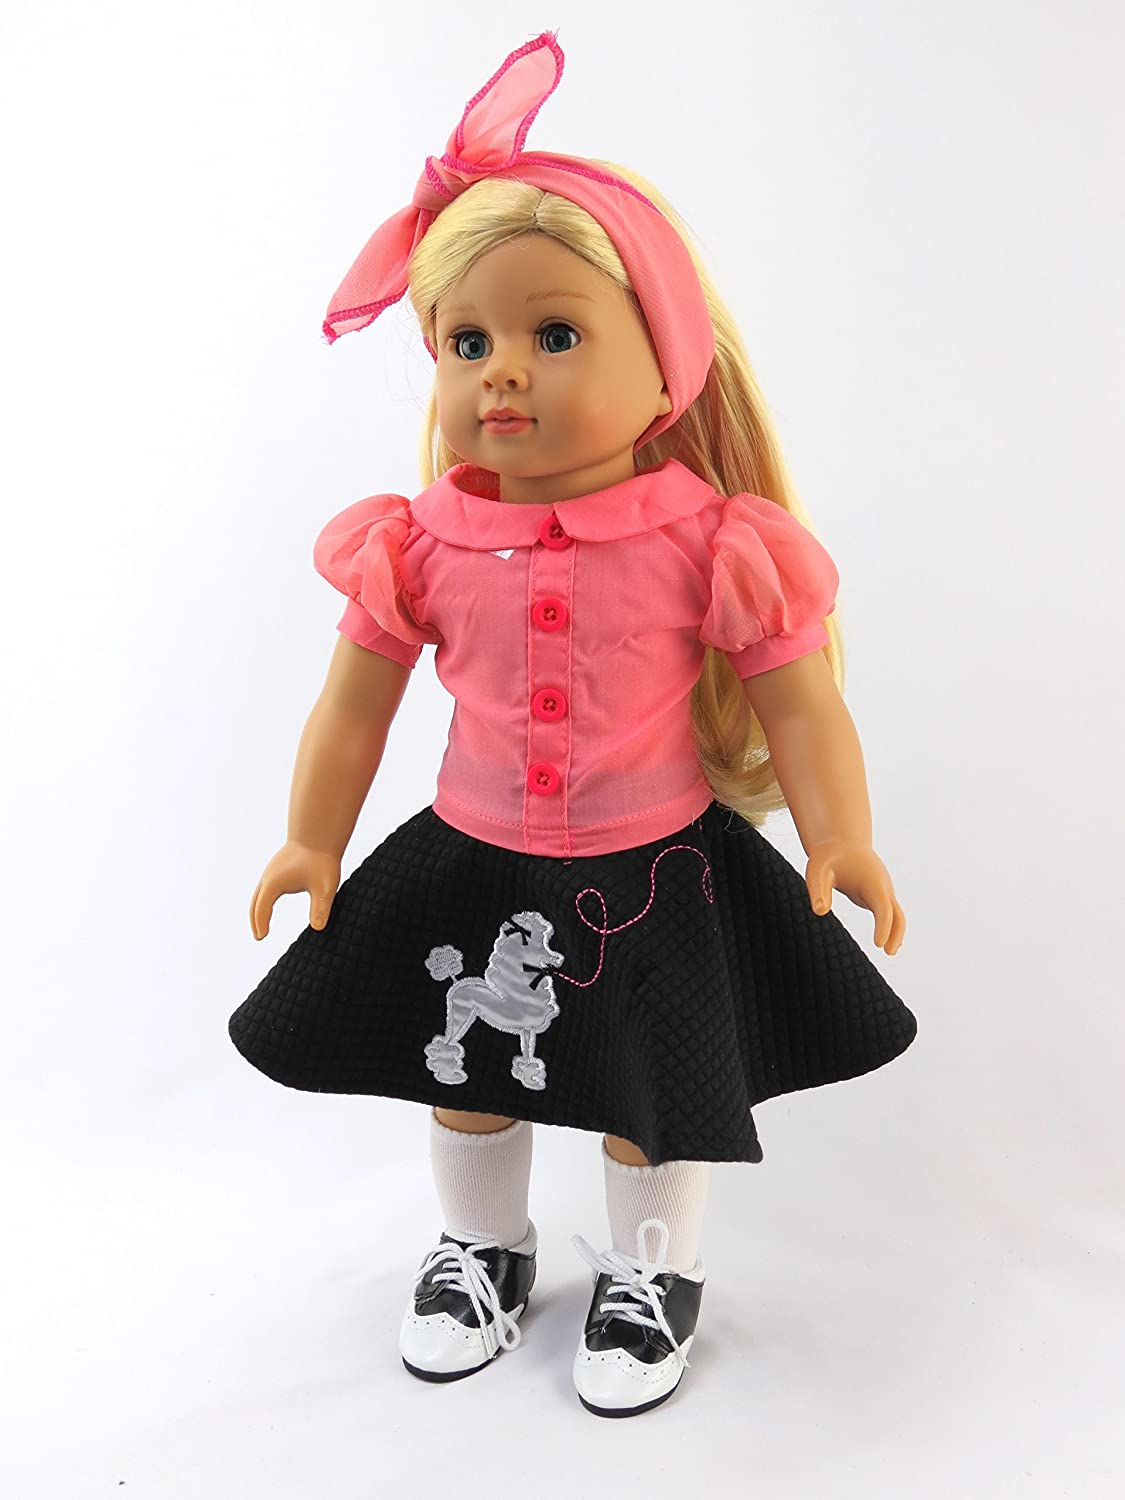 Amazon.com: 50\'s Poodle Skirt Outfit | Fits 18"|1125|1500|?|en|2|dabb5077f5c3953009cd62357f878a62|False|UNLIKELY|0.31133556365966797